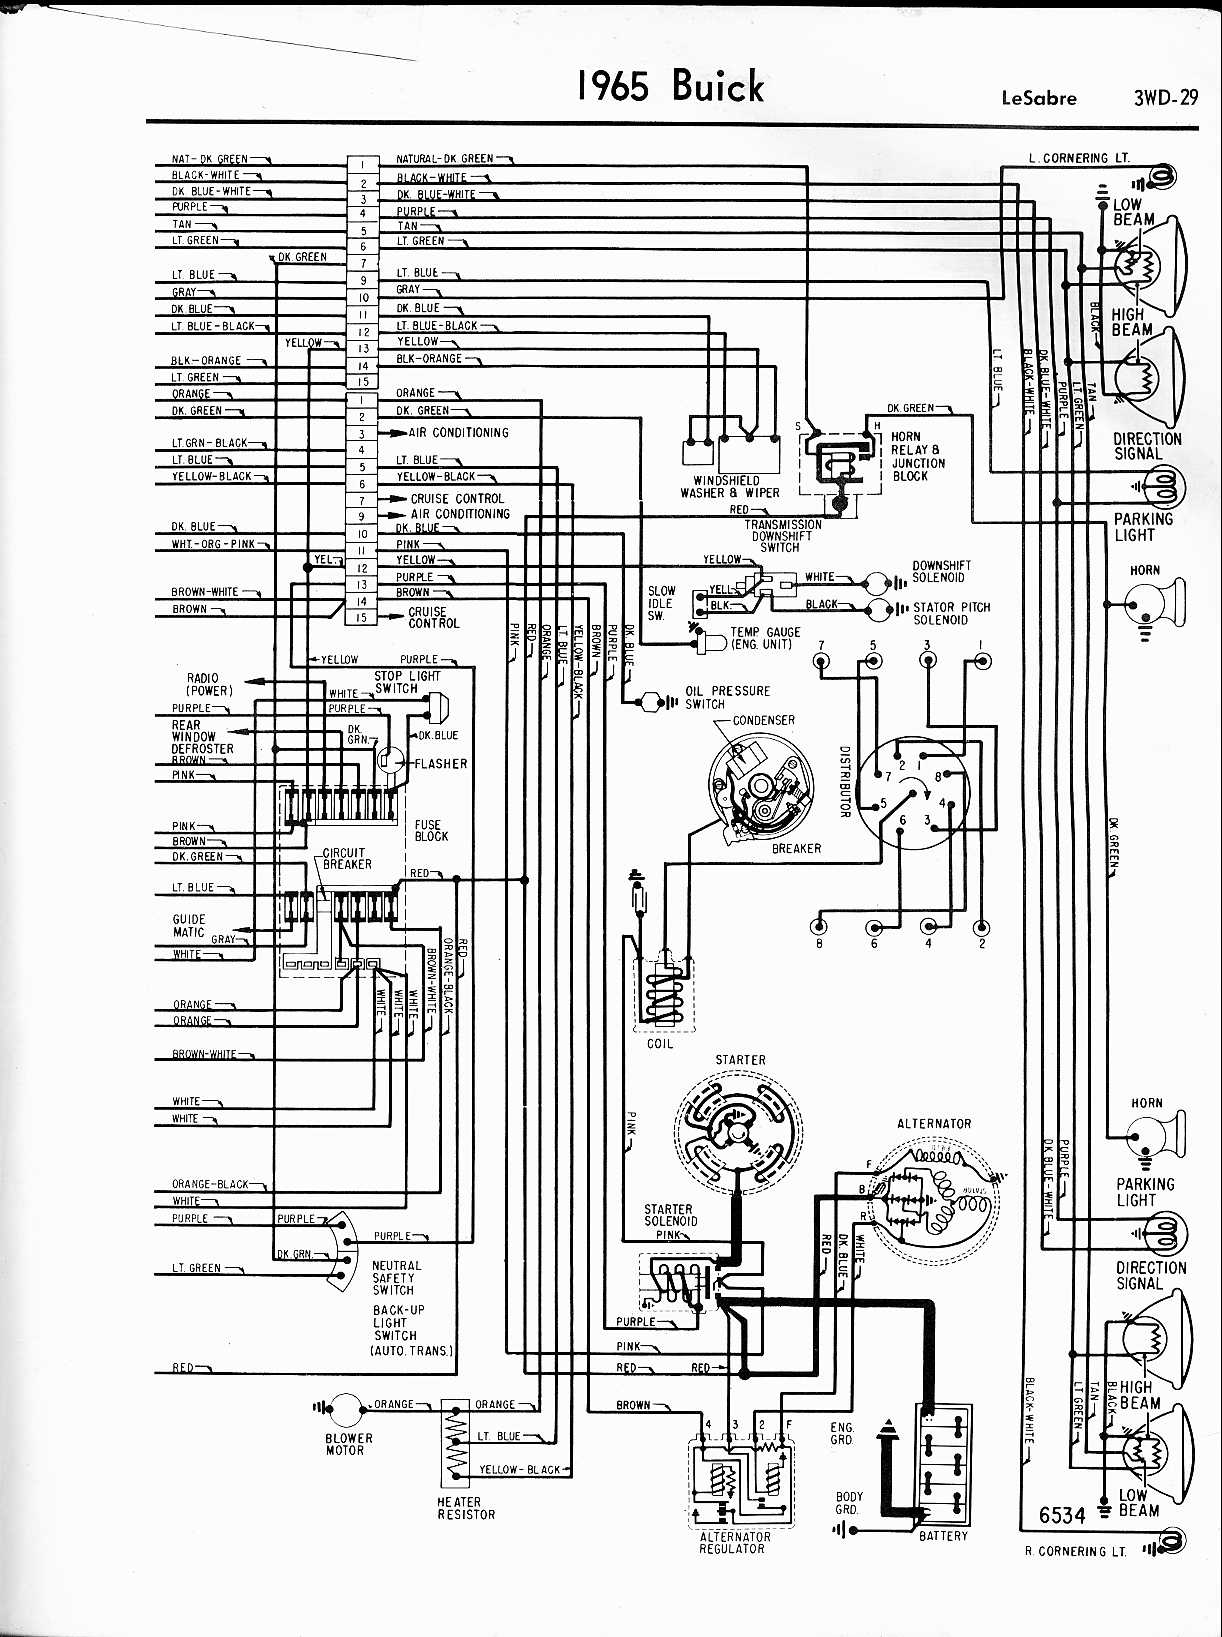 1965 Buick Special Wiring Diagram Mastering 96 Accord Engine Diagrams 1957 Rh Oldcarmanualproject Com 2003 Regal 1996